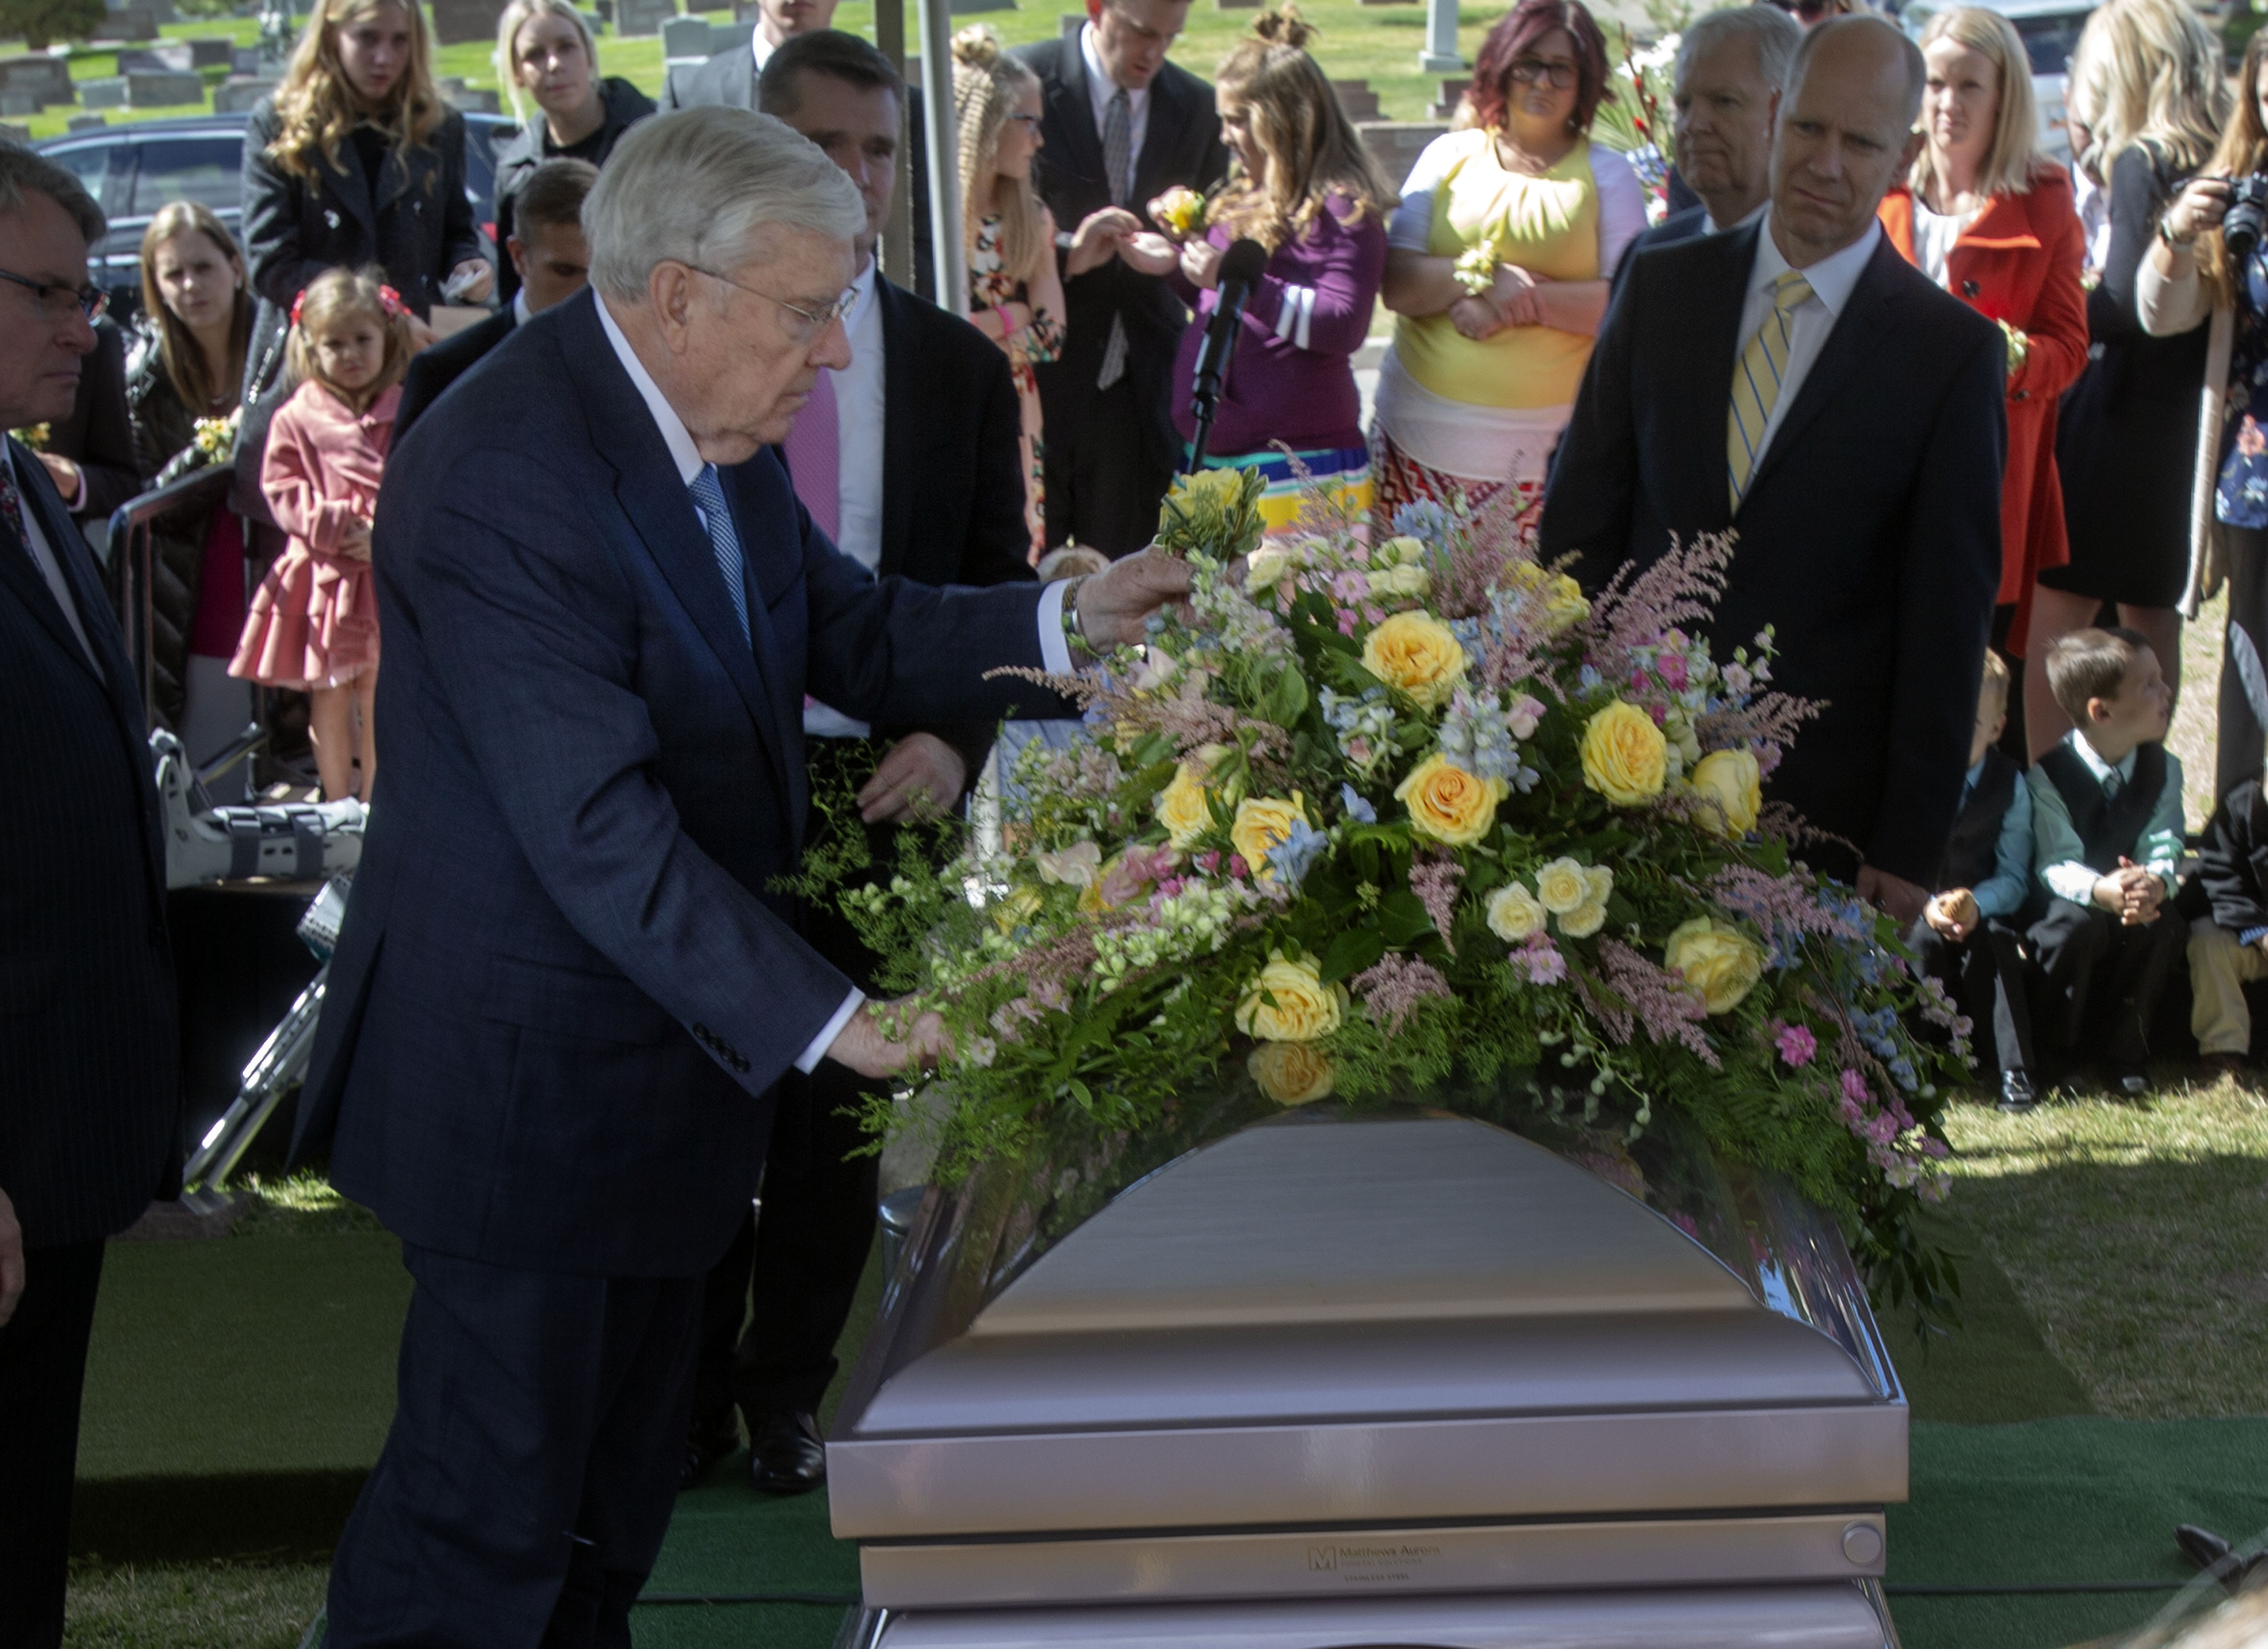 President M. Russell Ballard, acting president of the Quorum of the Twelve Apostles, places a yellow rose in the casket spray for his wife, Sister Barbara Ballard, who was laid to rest in the Salt Lake City Cemetery, Monday, October 8. 2018.